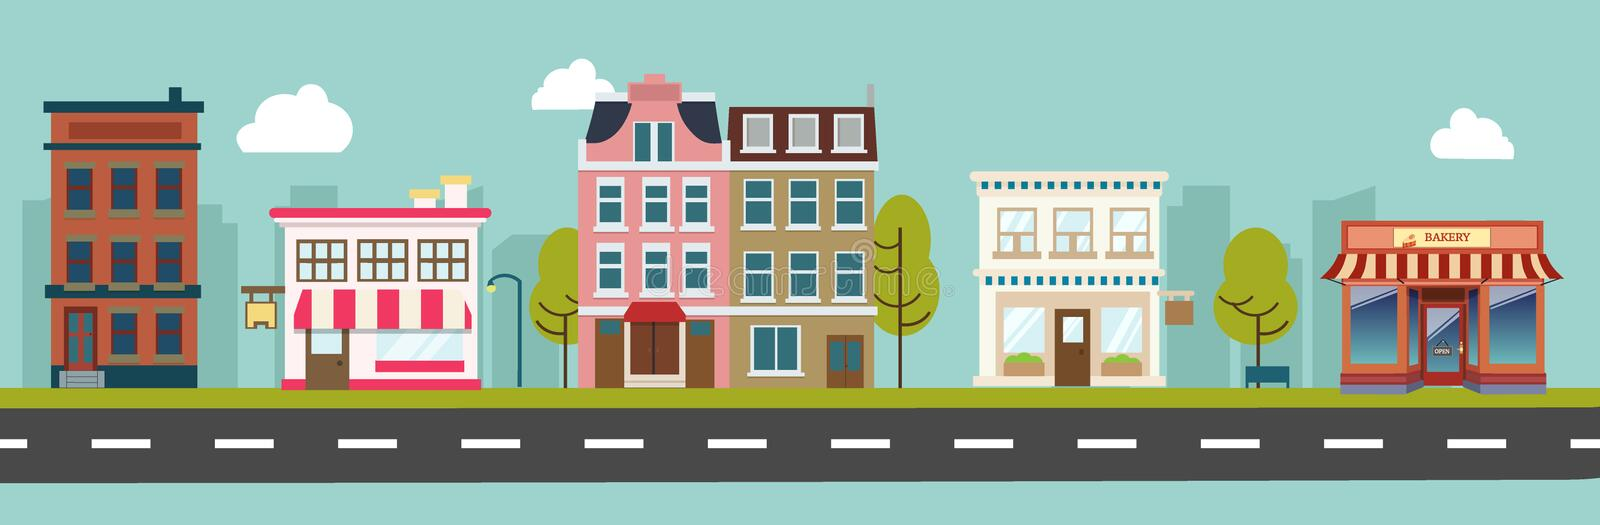 City main street and store buildings vector stock illustration